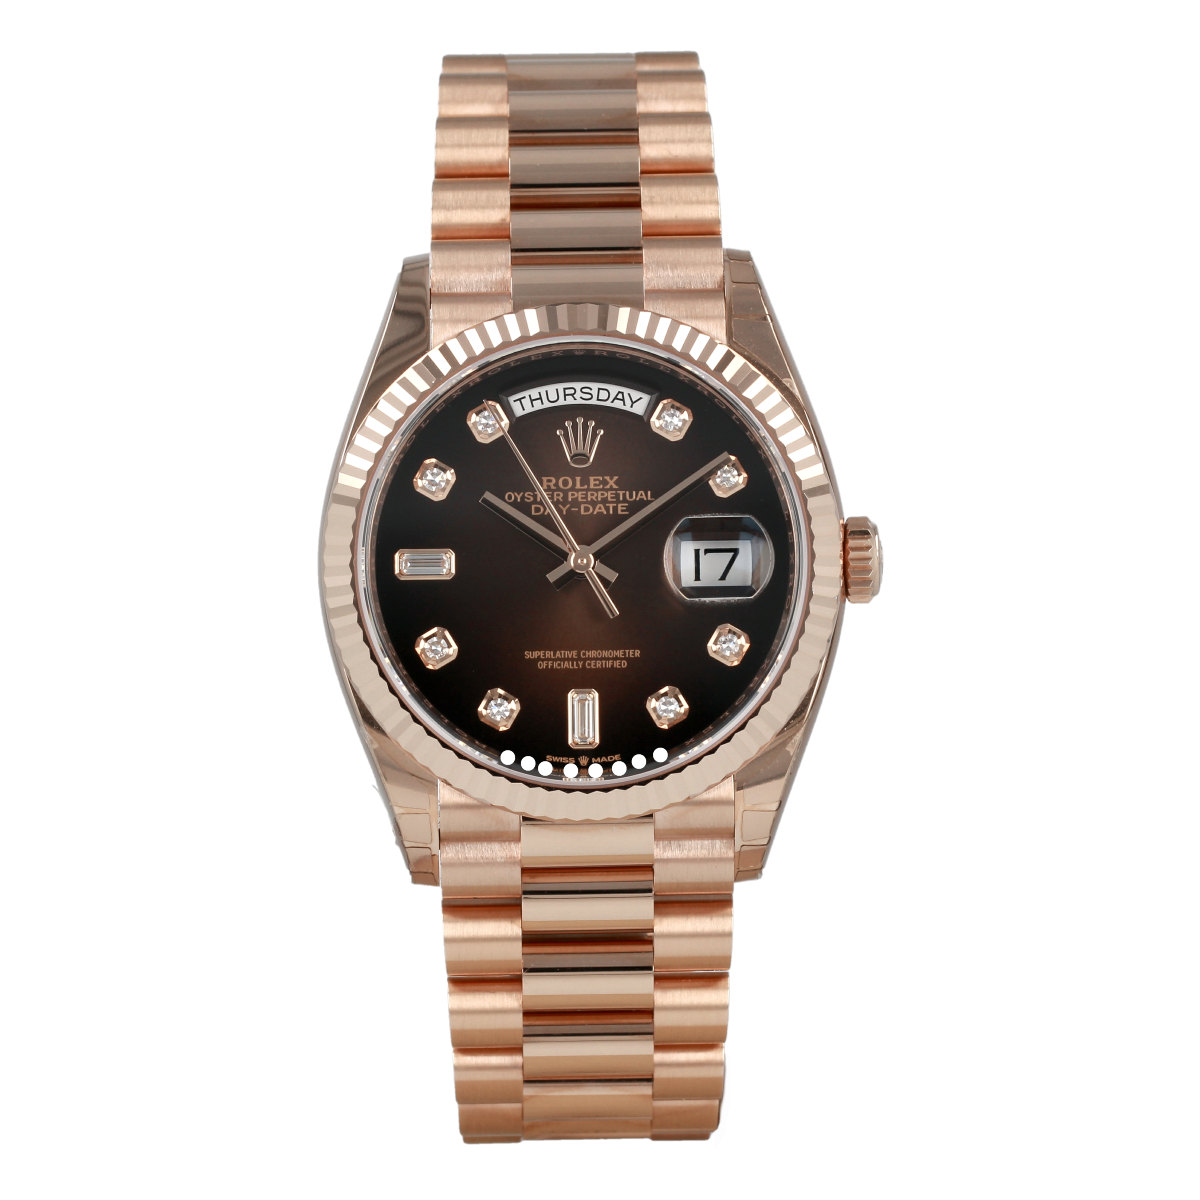 Rolex Day-Date 128235 36mm Everose Gold Brown Diamond-Set Dial | Buy pre-owned Rolex watch